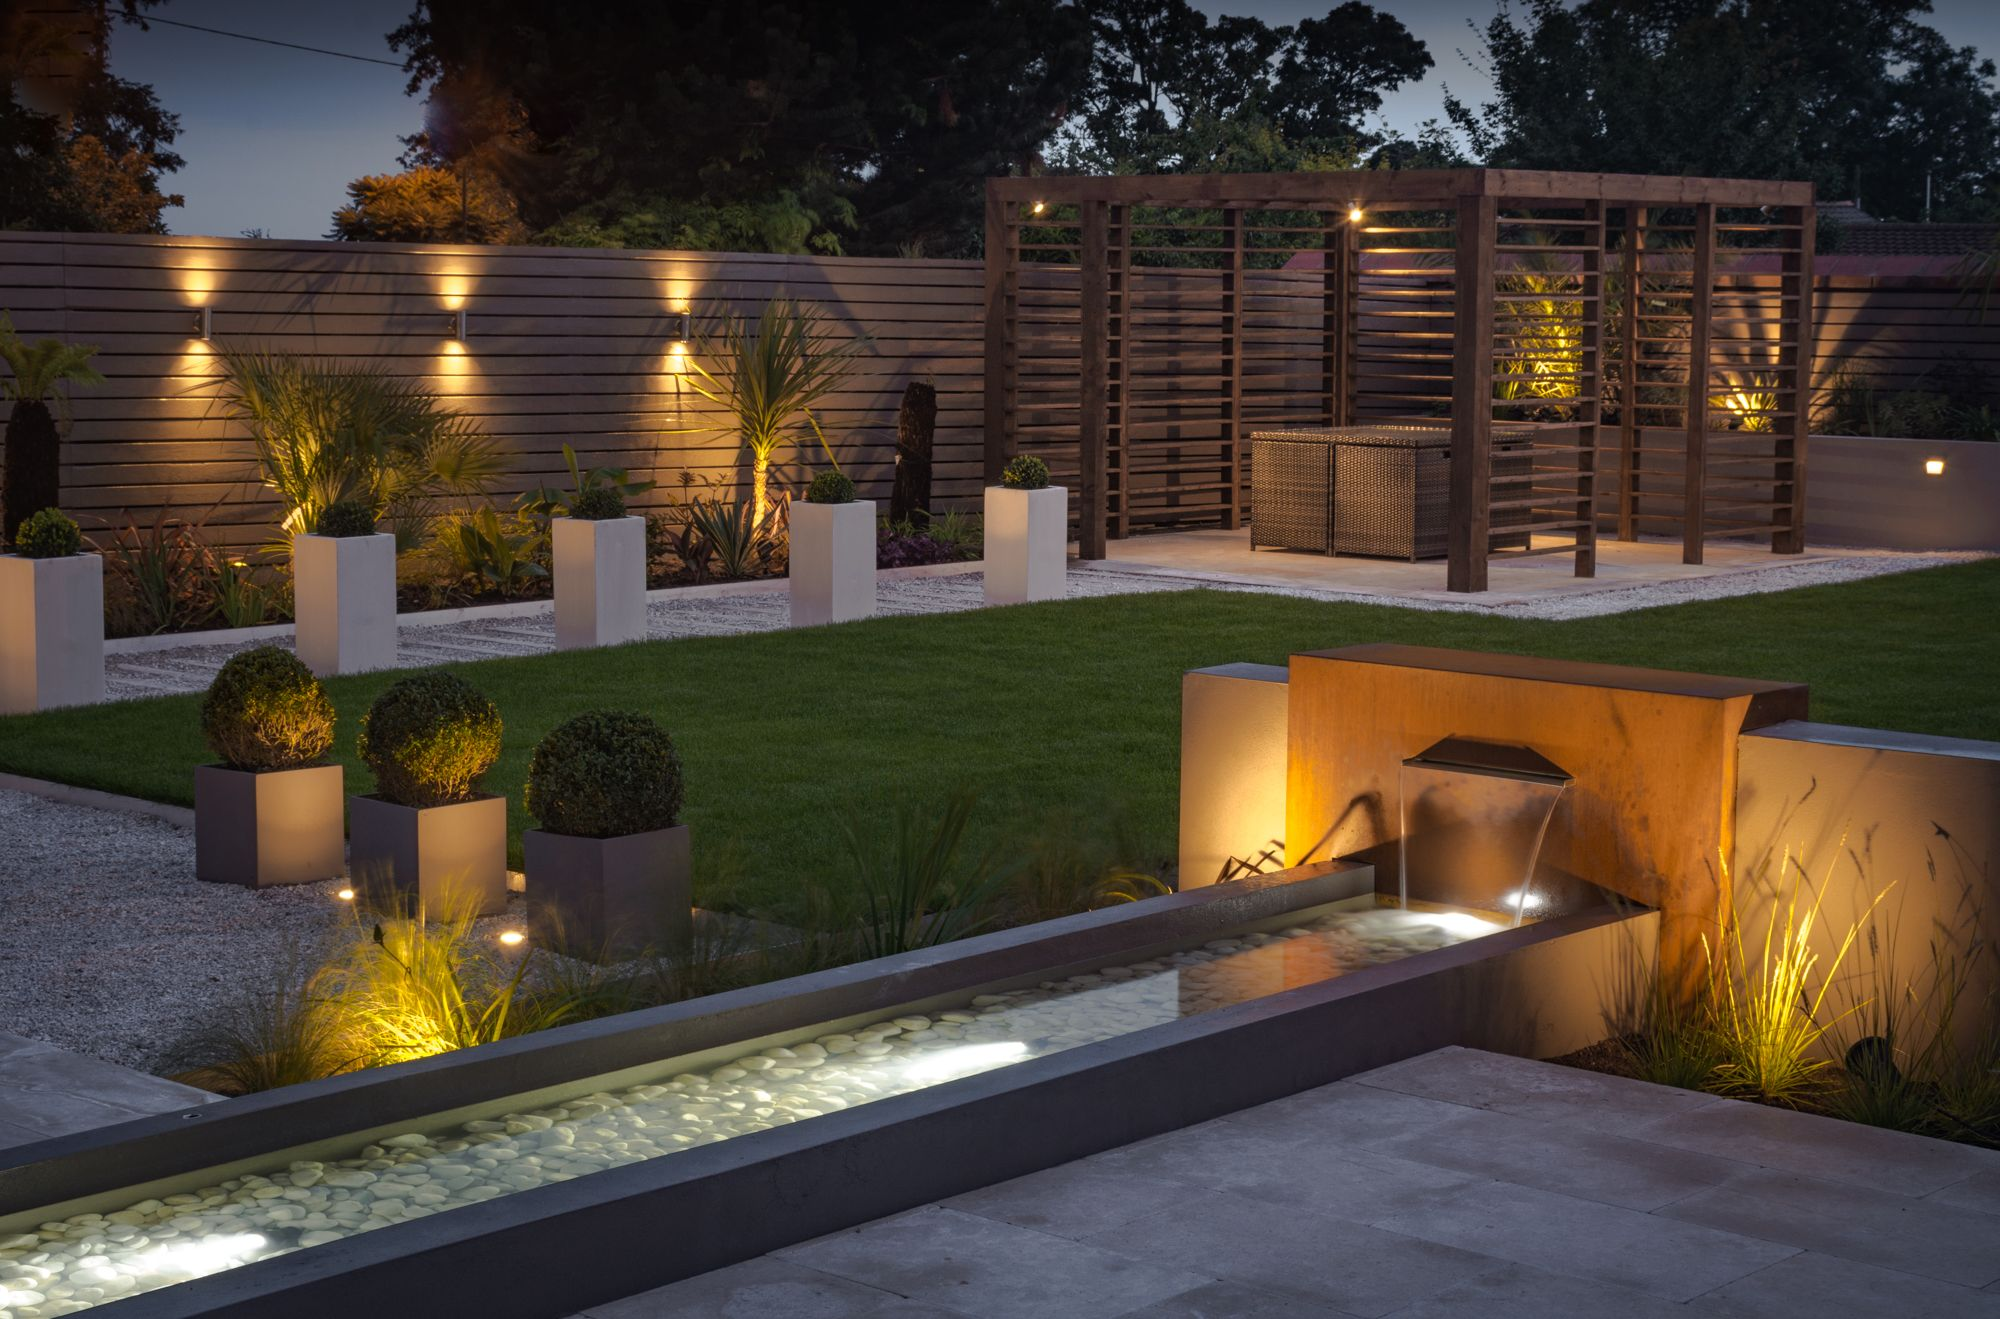 Mood Lighting Creates A Chic Atmosphere In Contemporary